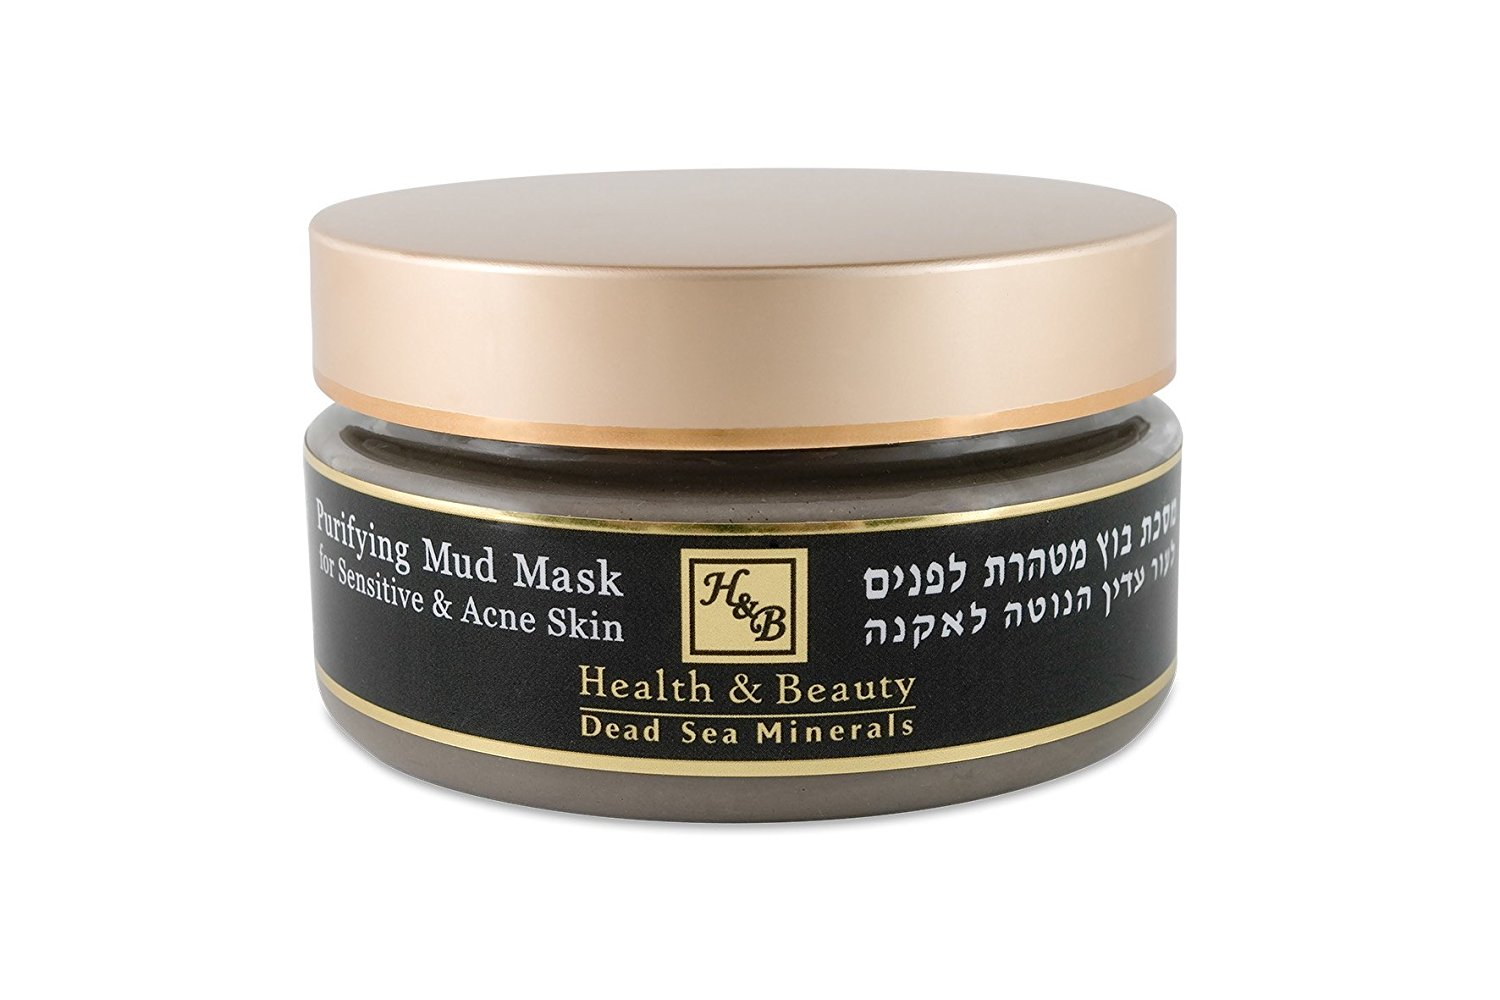 H&B DEAD SEA Purifying Mud Mask for Sensitive & Acne Skin